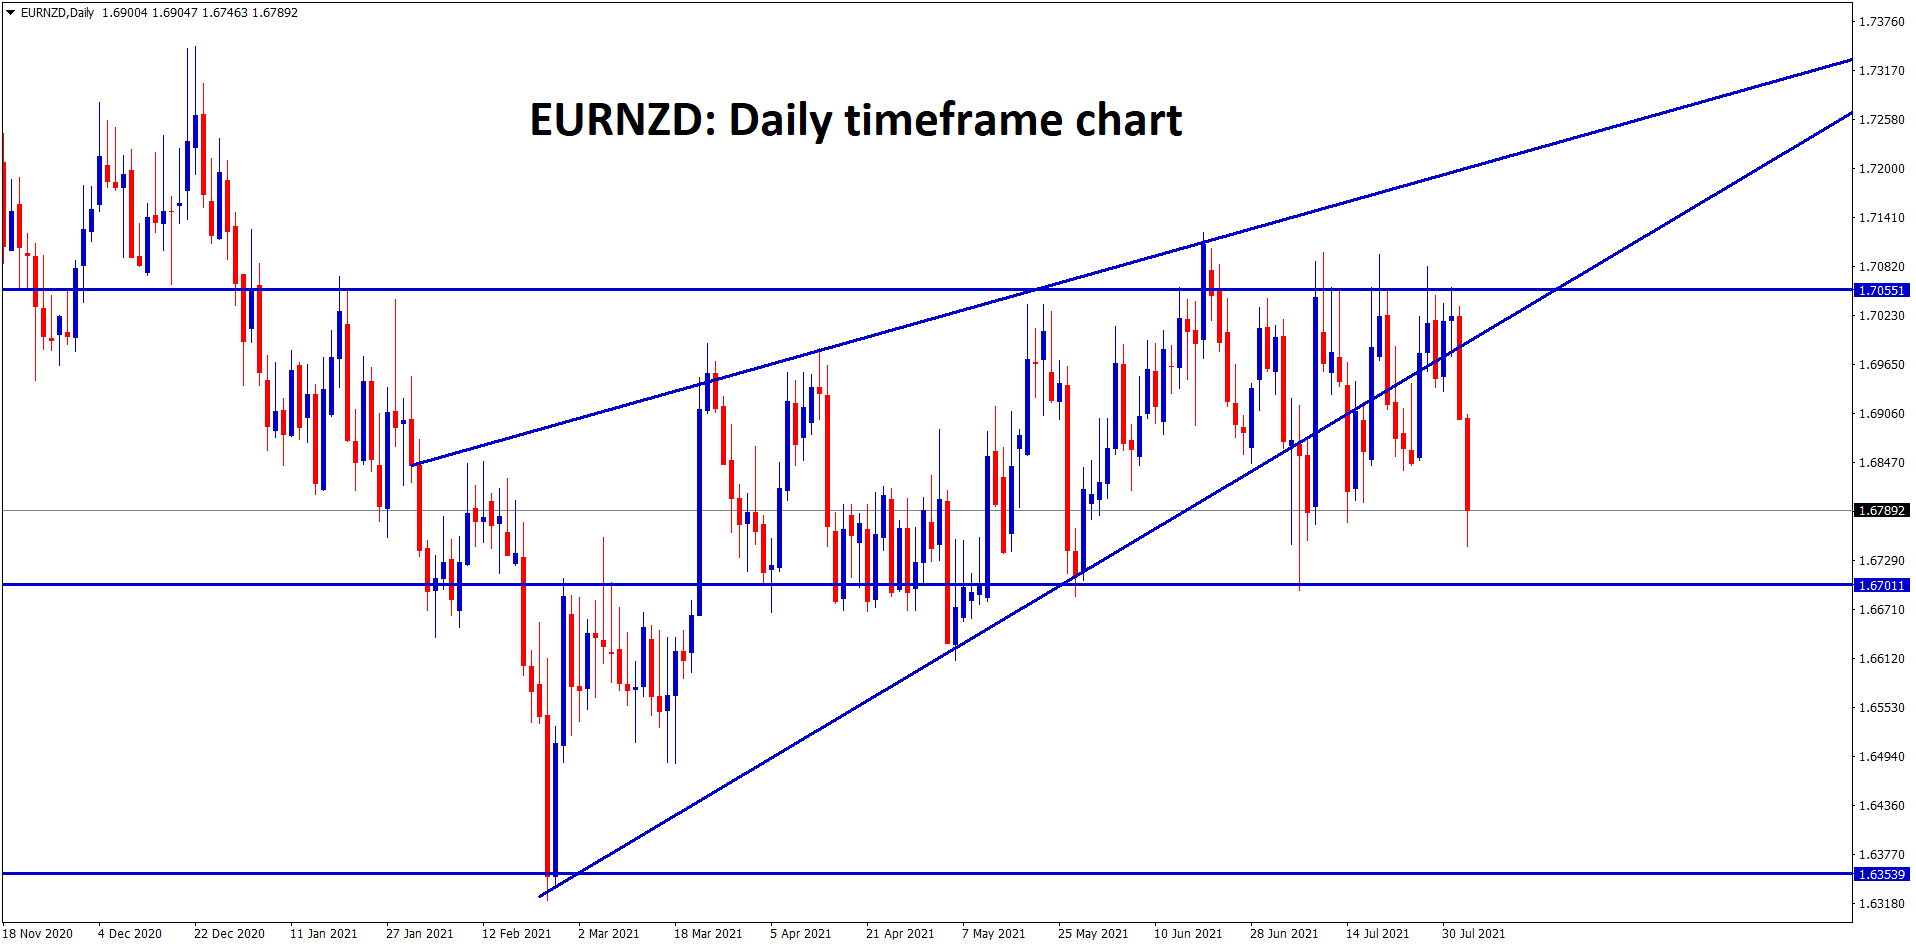 EURNZD is ranging between the resistance and support areas